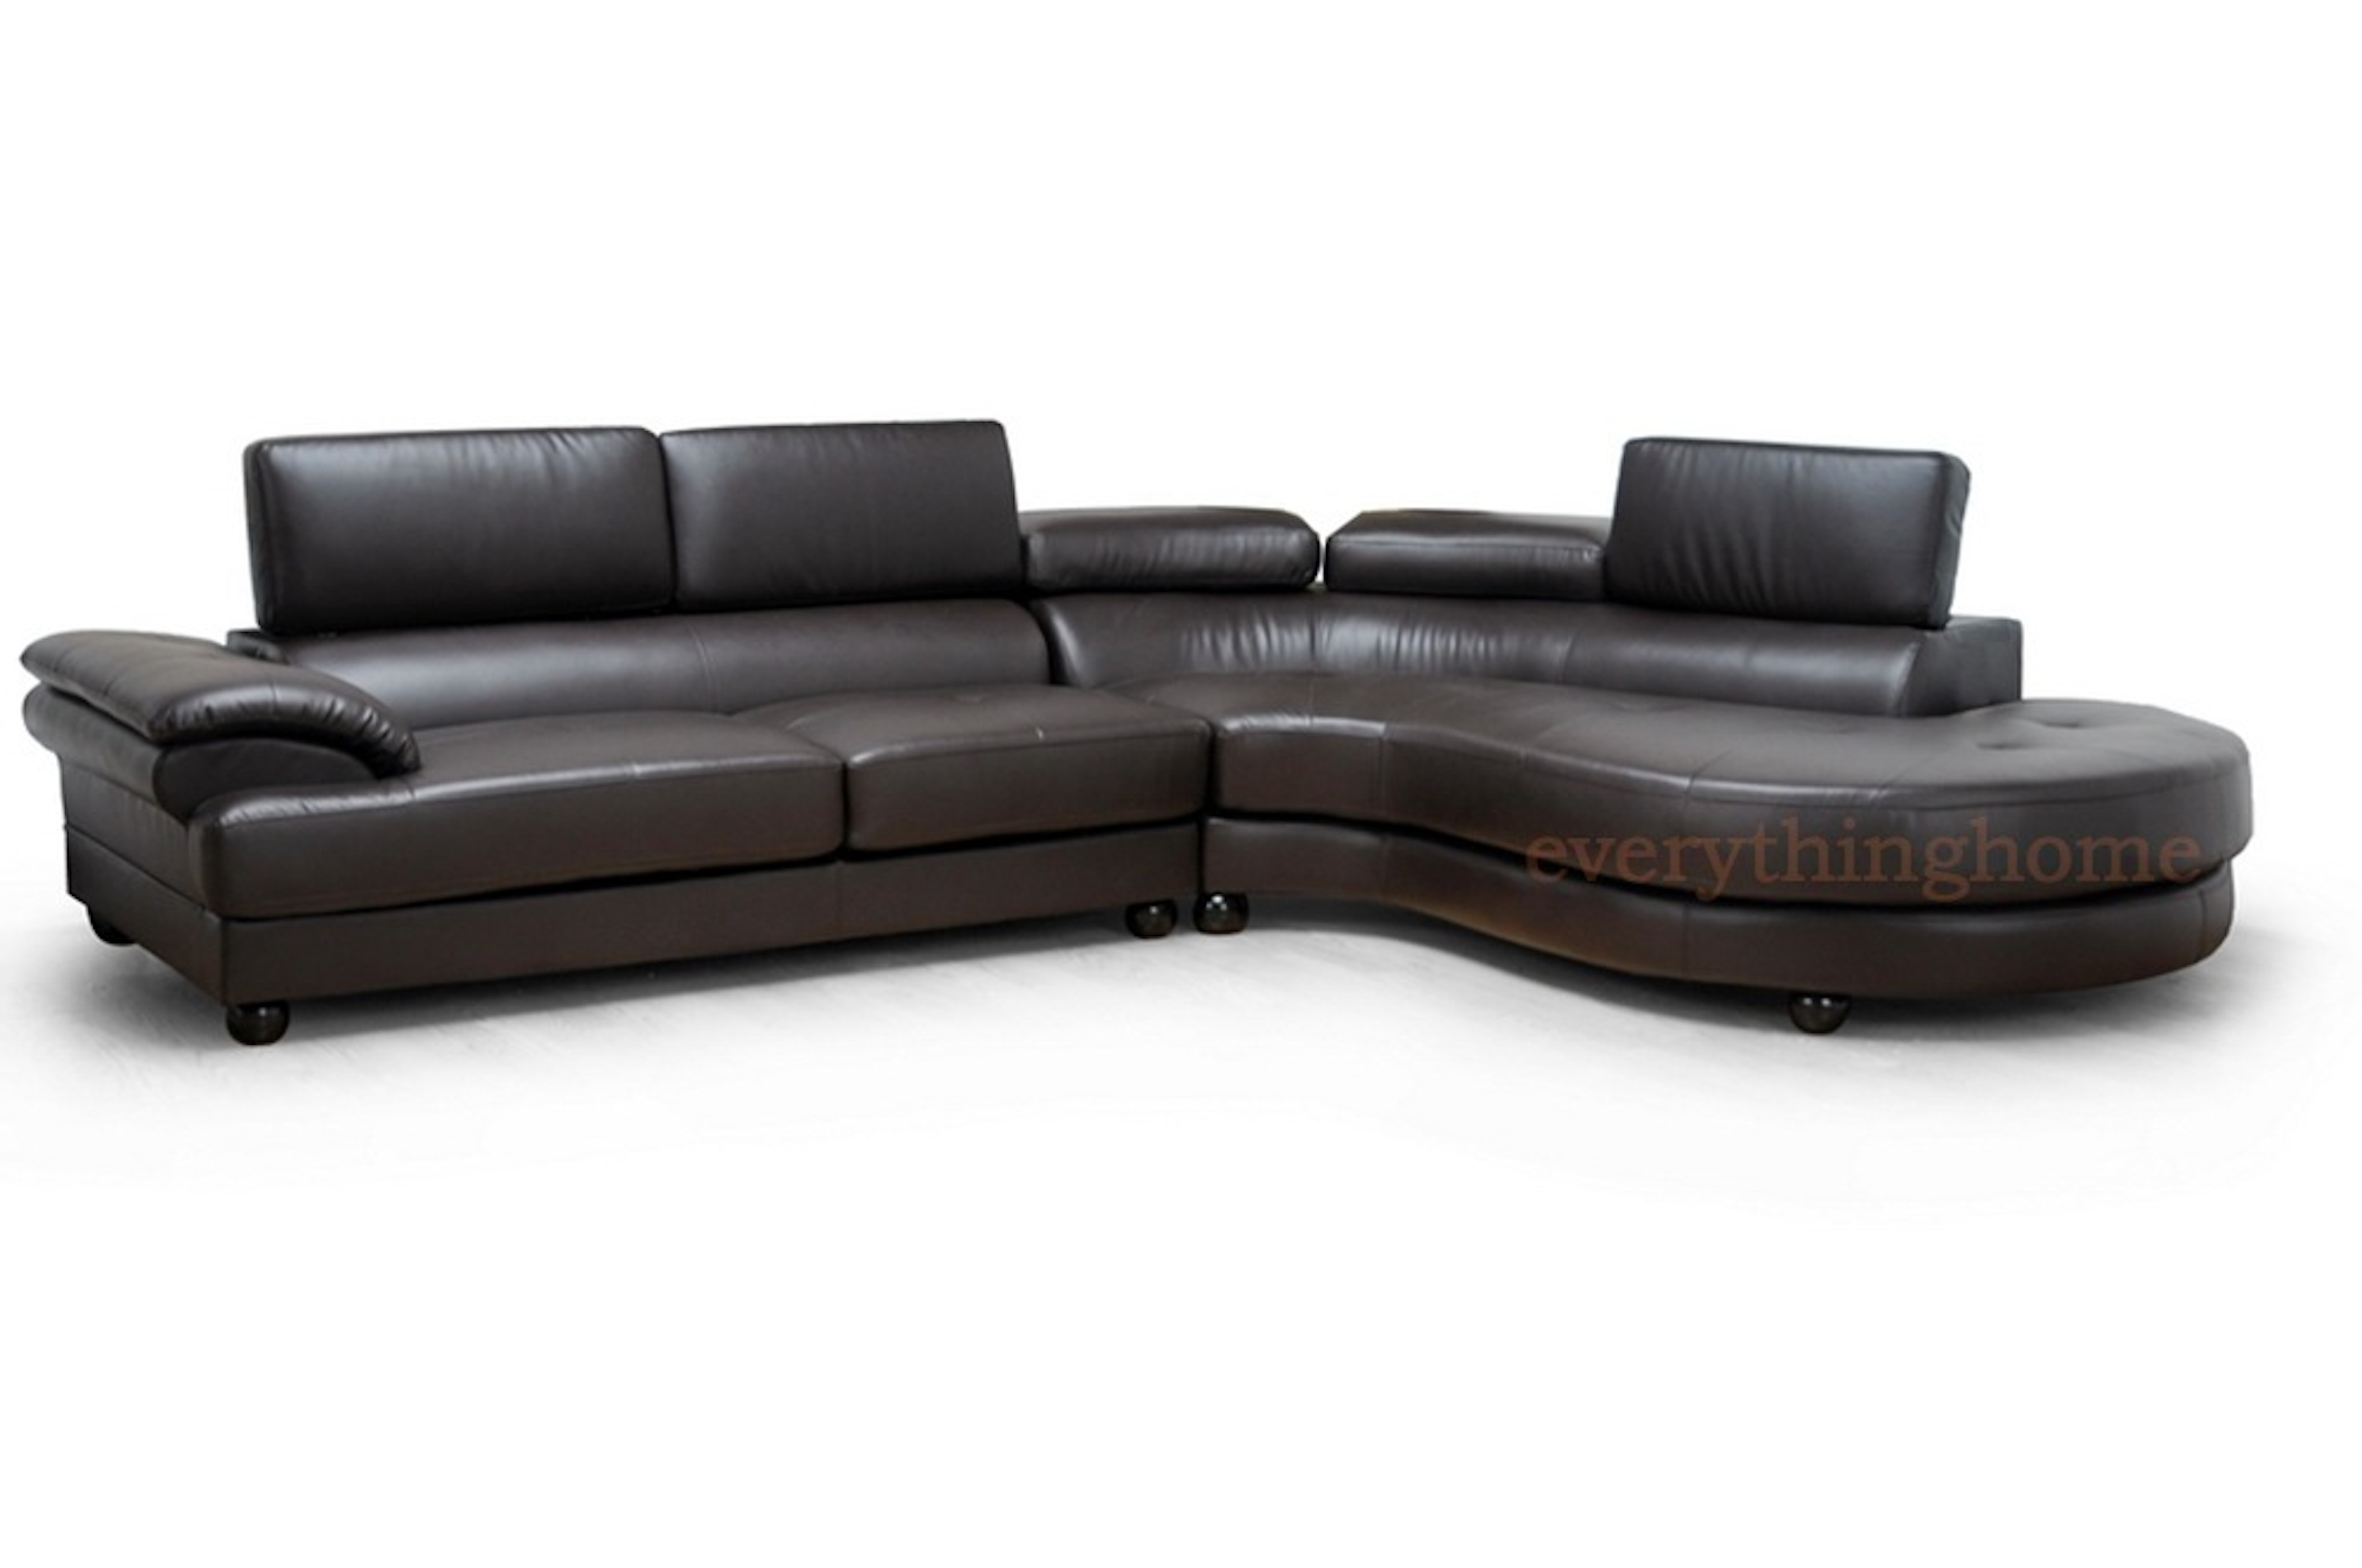 Brown bonded leather modern sectional left right facing for Bonded leather sectional sofa with chaise